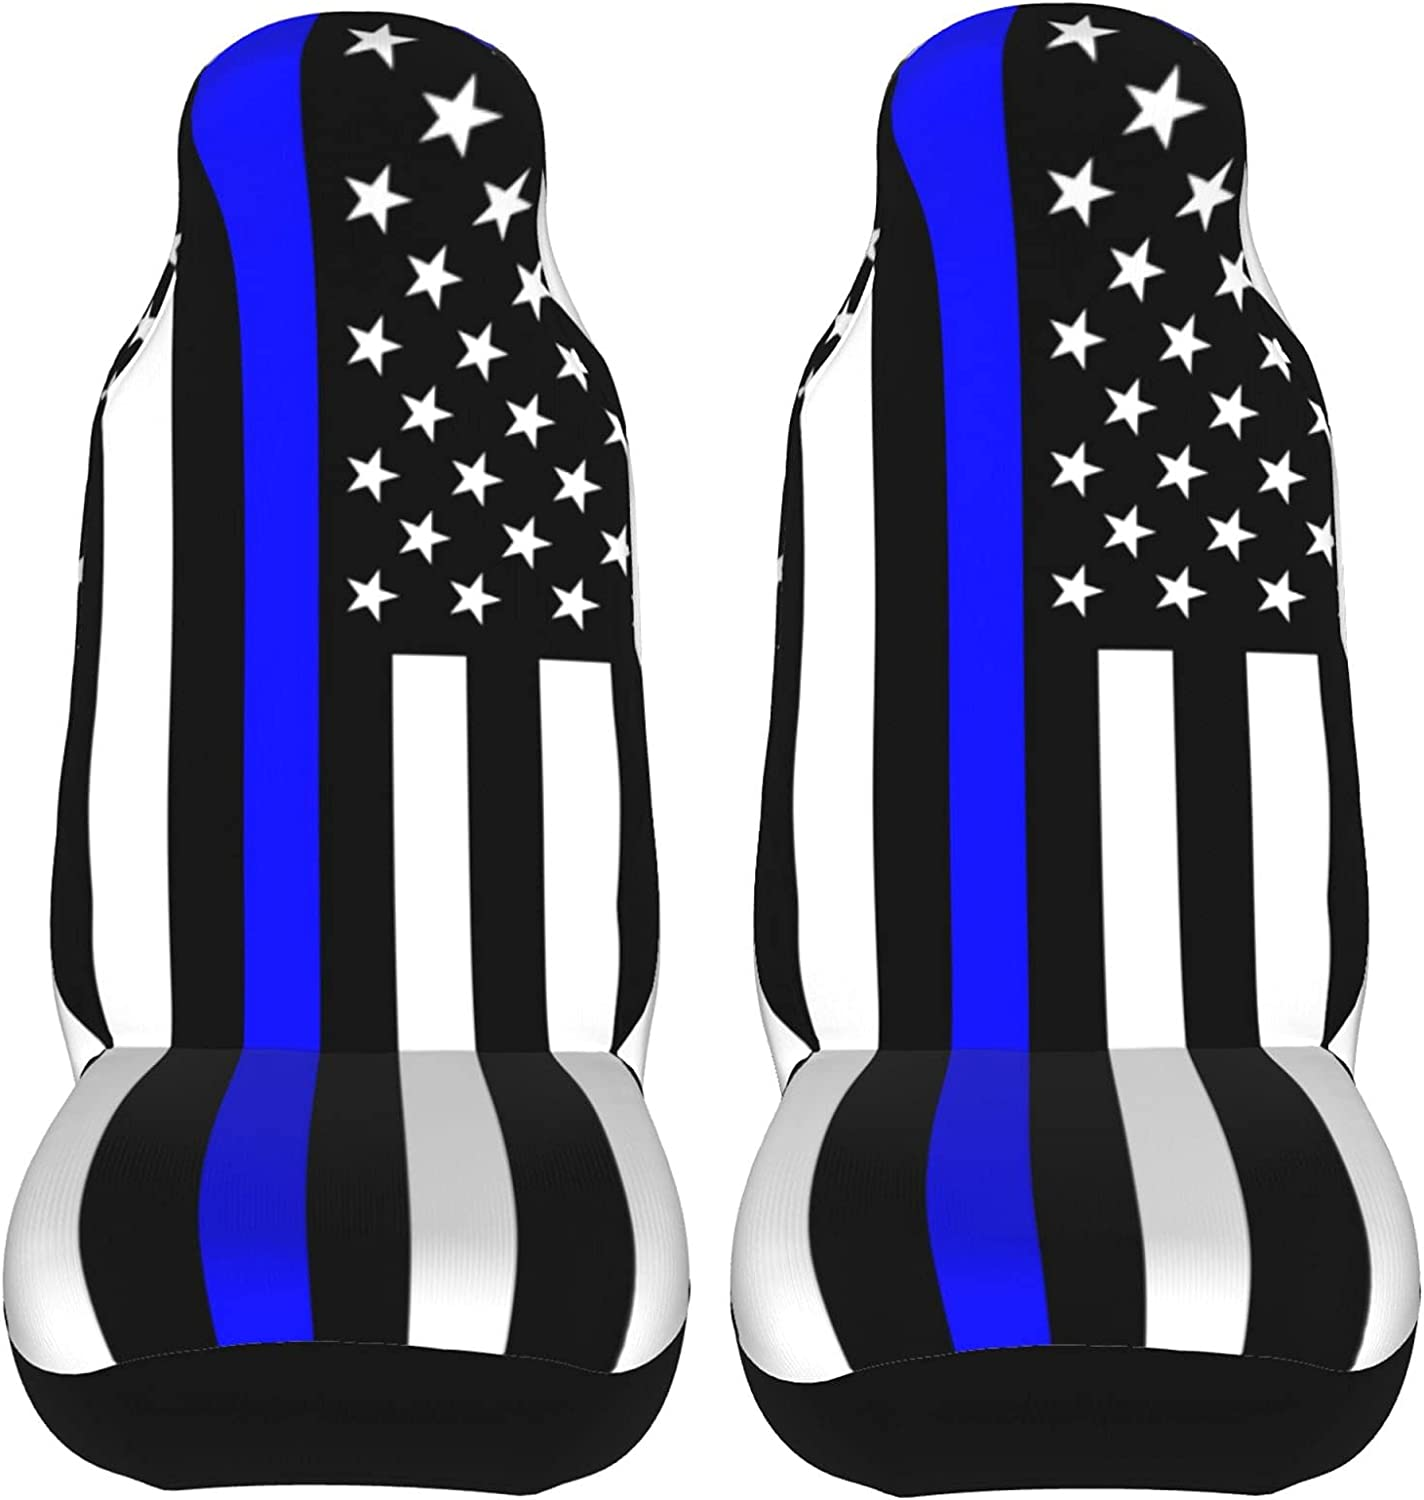 Black Gray Blue low-pricing Line New arrival American Flag Car to Easy Cover I 2pcs Seat